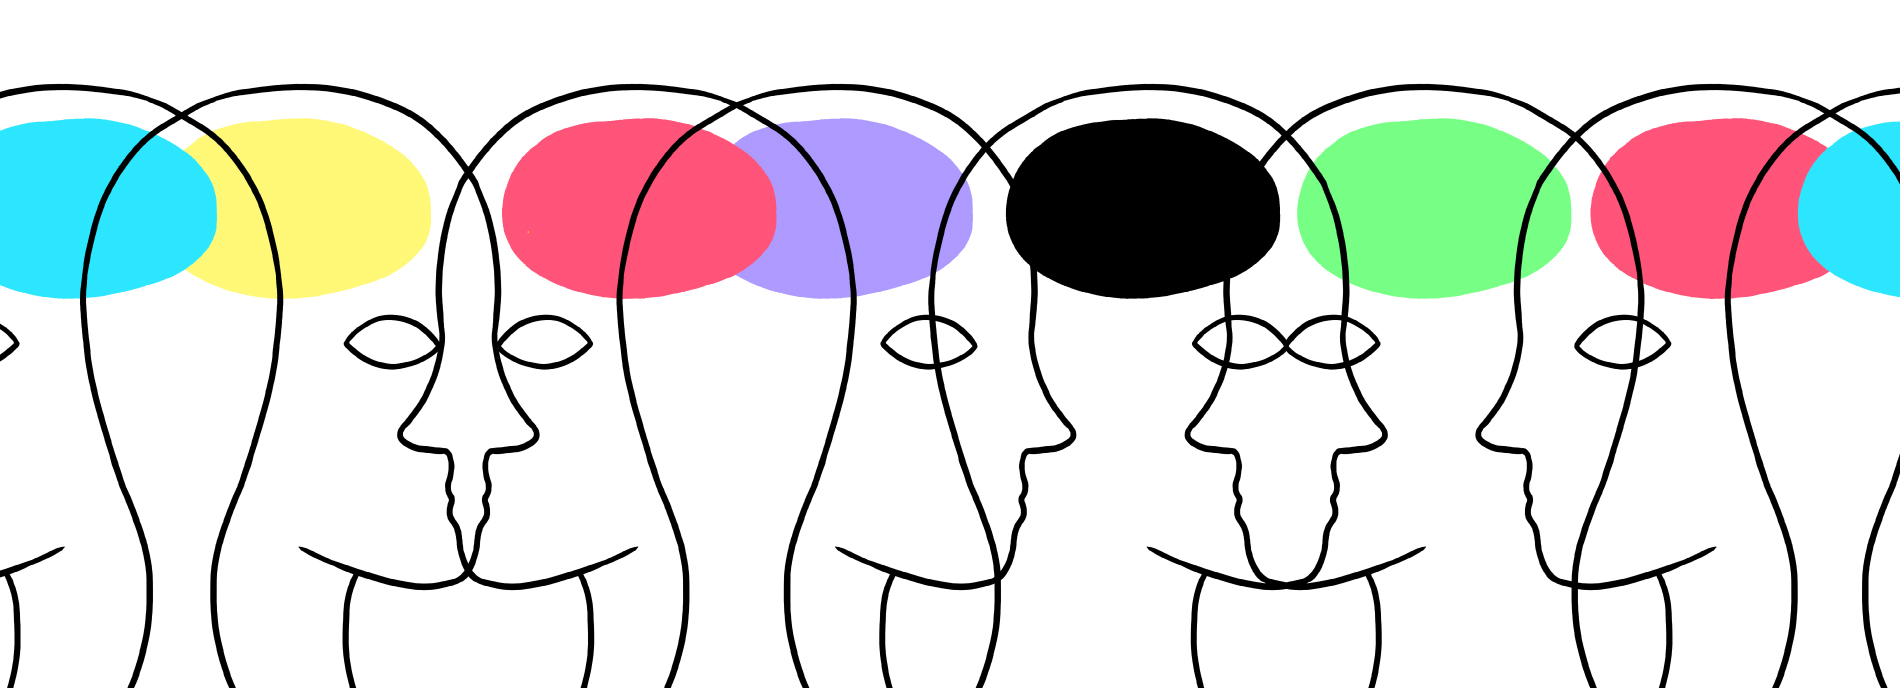 Illustration of a row of transparent heads in profile--we can see different colors in the brain areas.